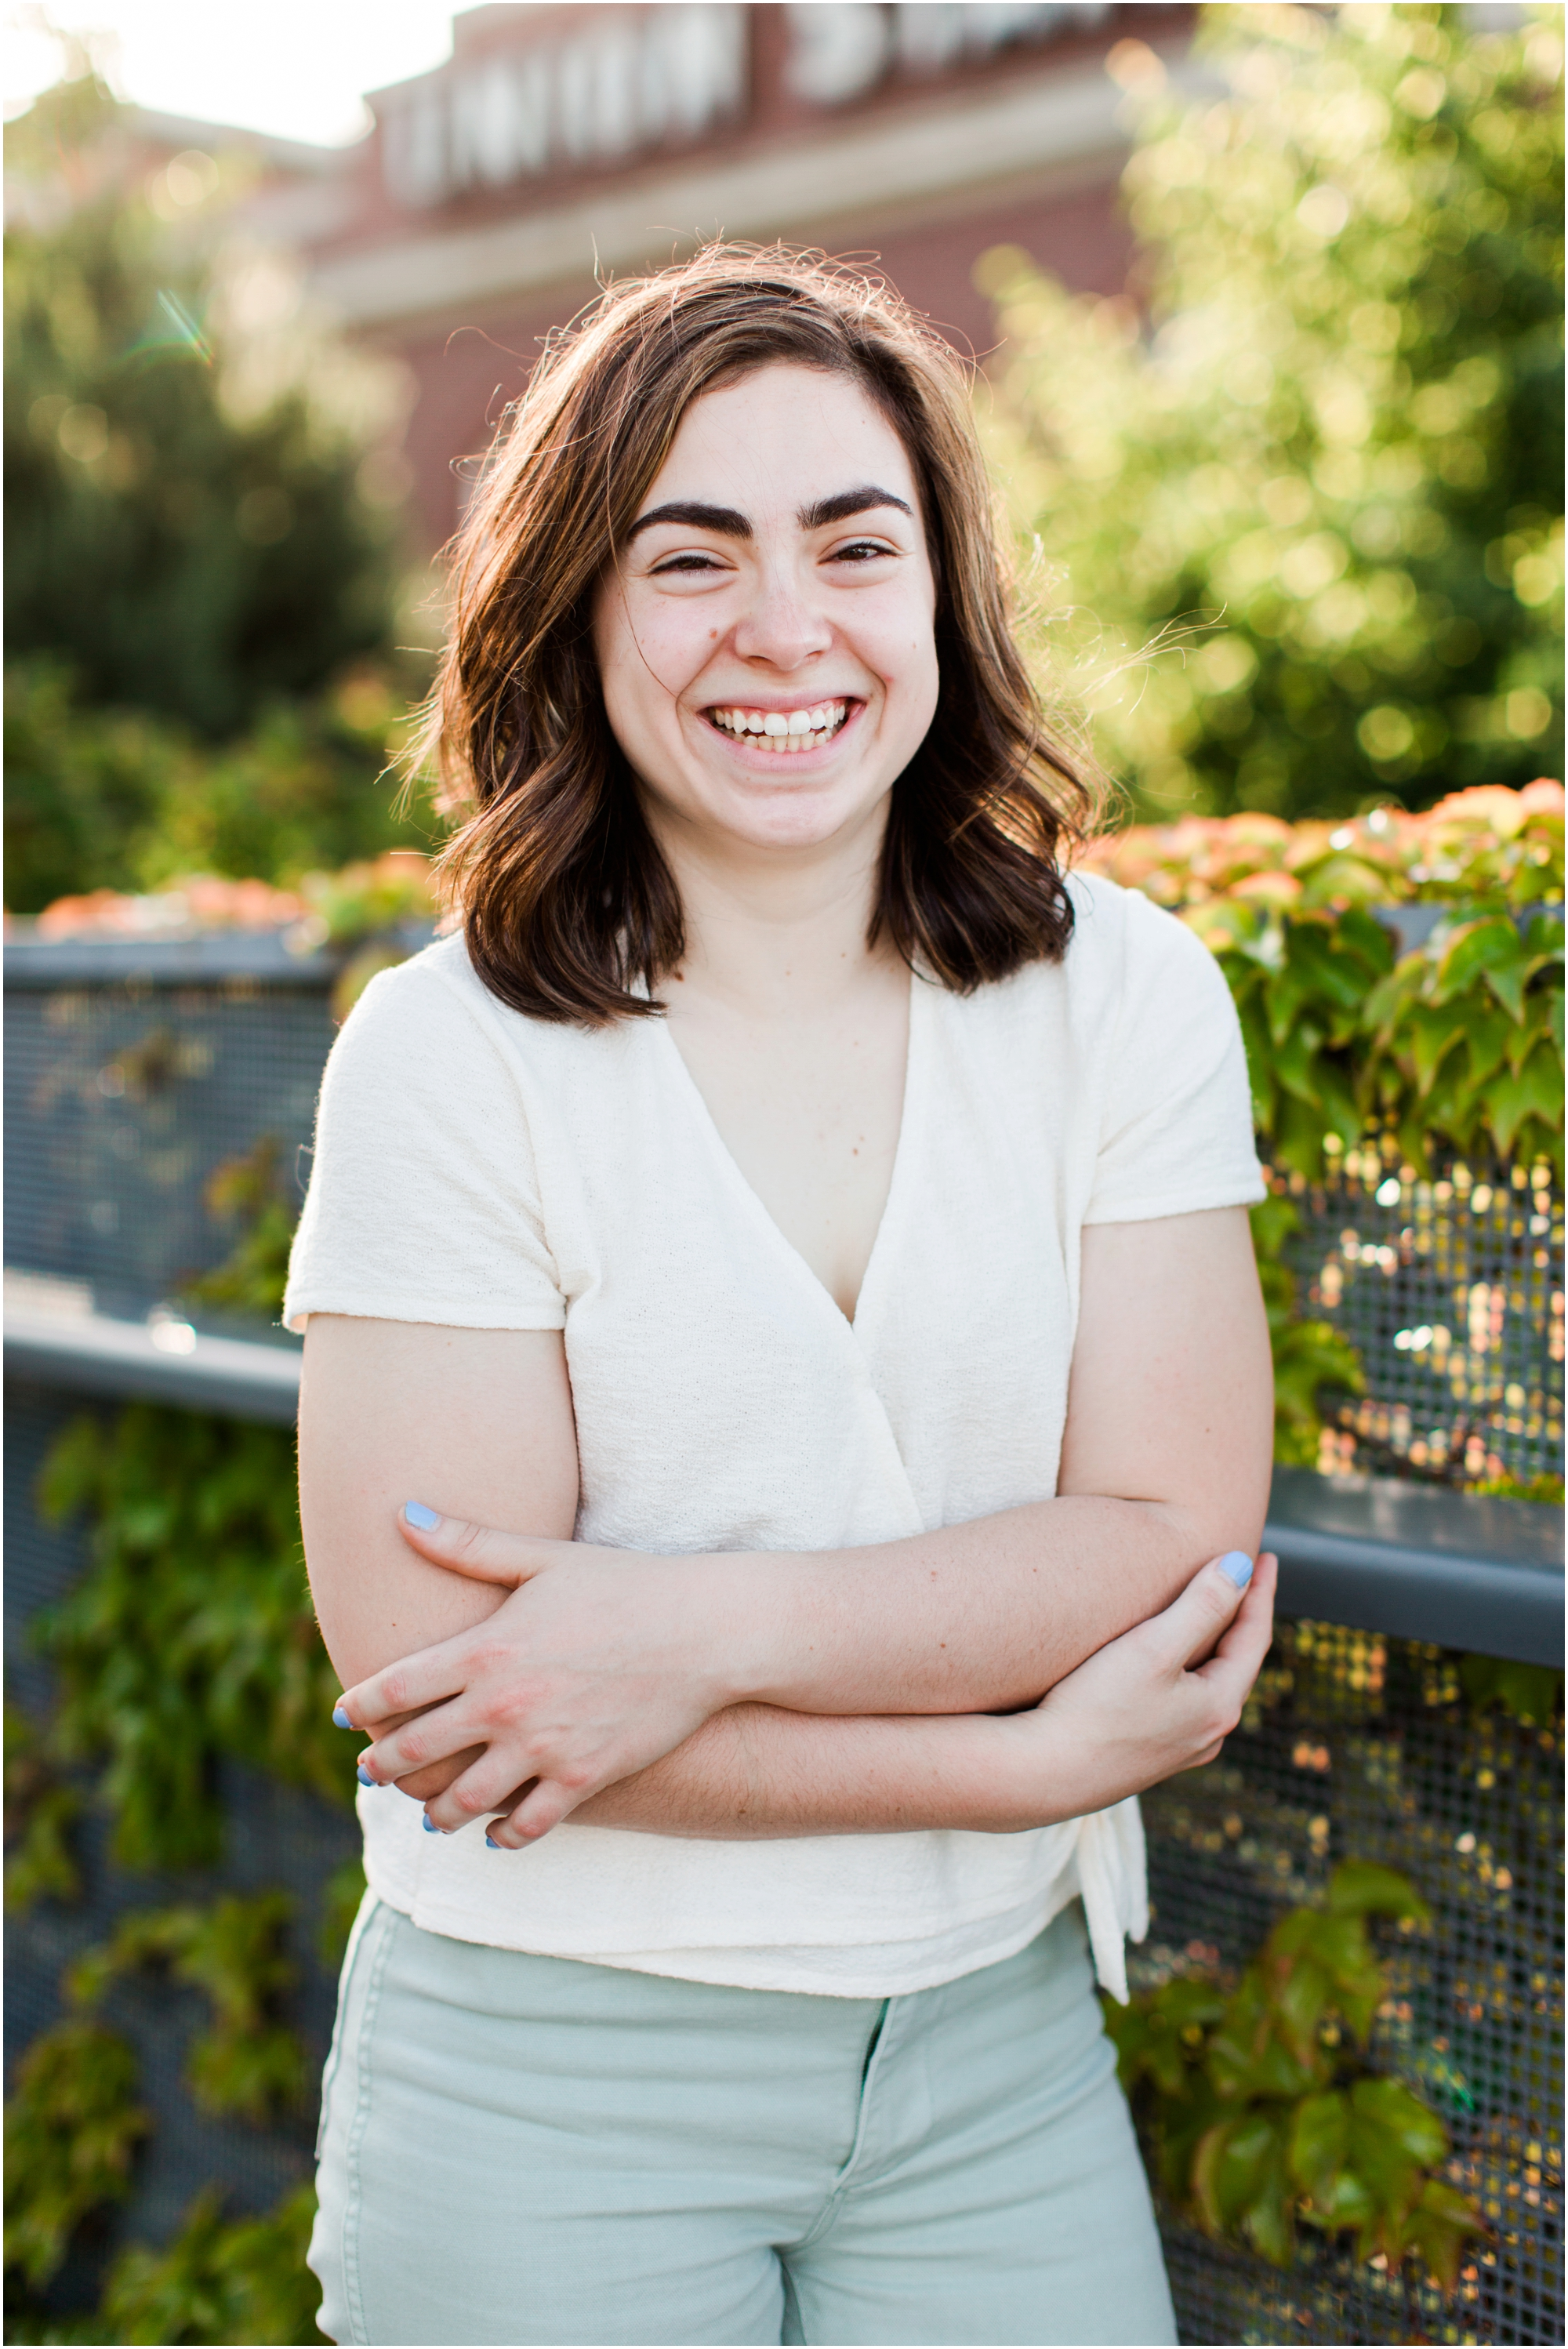 Senior portrait shoot at UW Tacoma campus and Bridge of Glass. Photos by Briana Calderon Photography based in the greater Seattle Area._1242.jpg